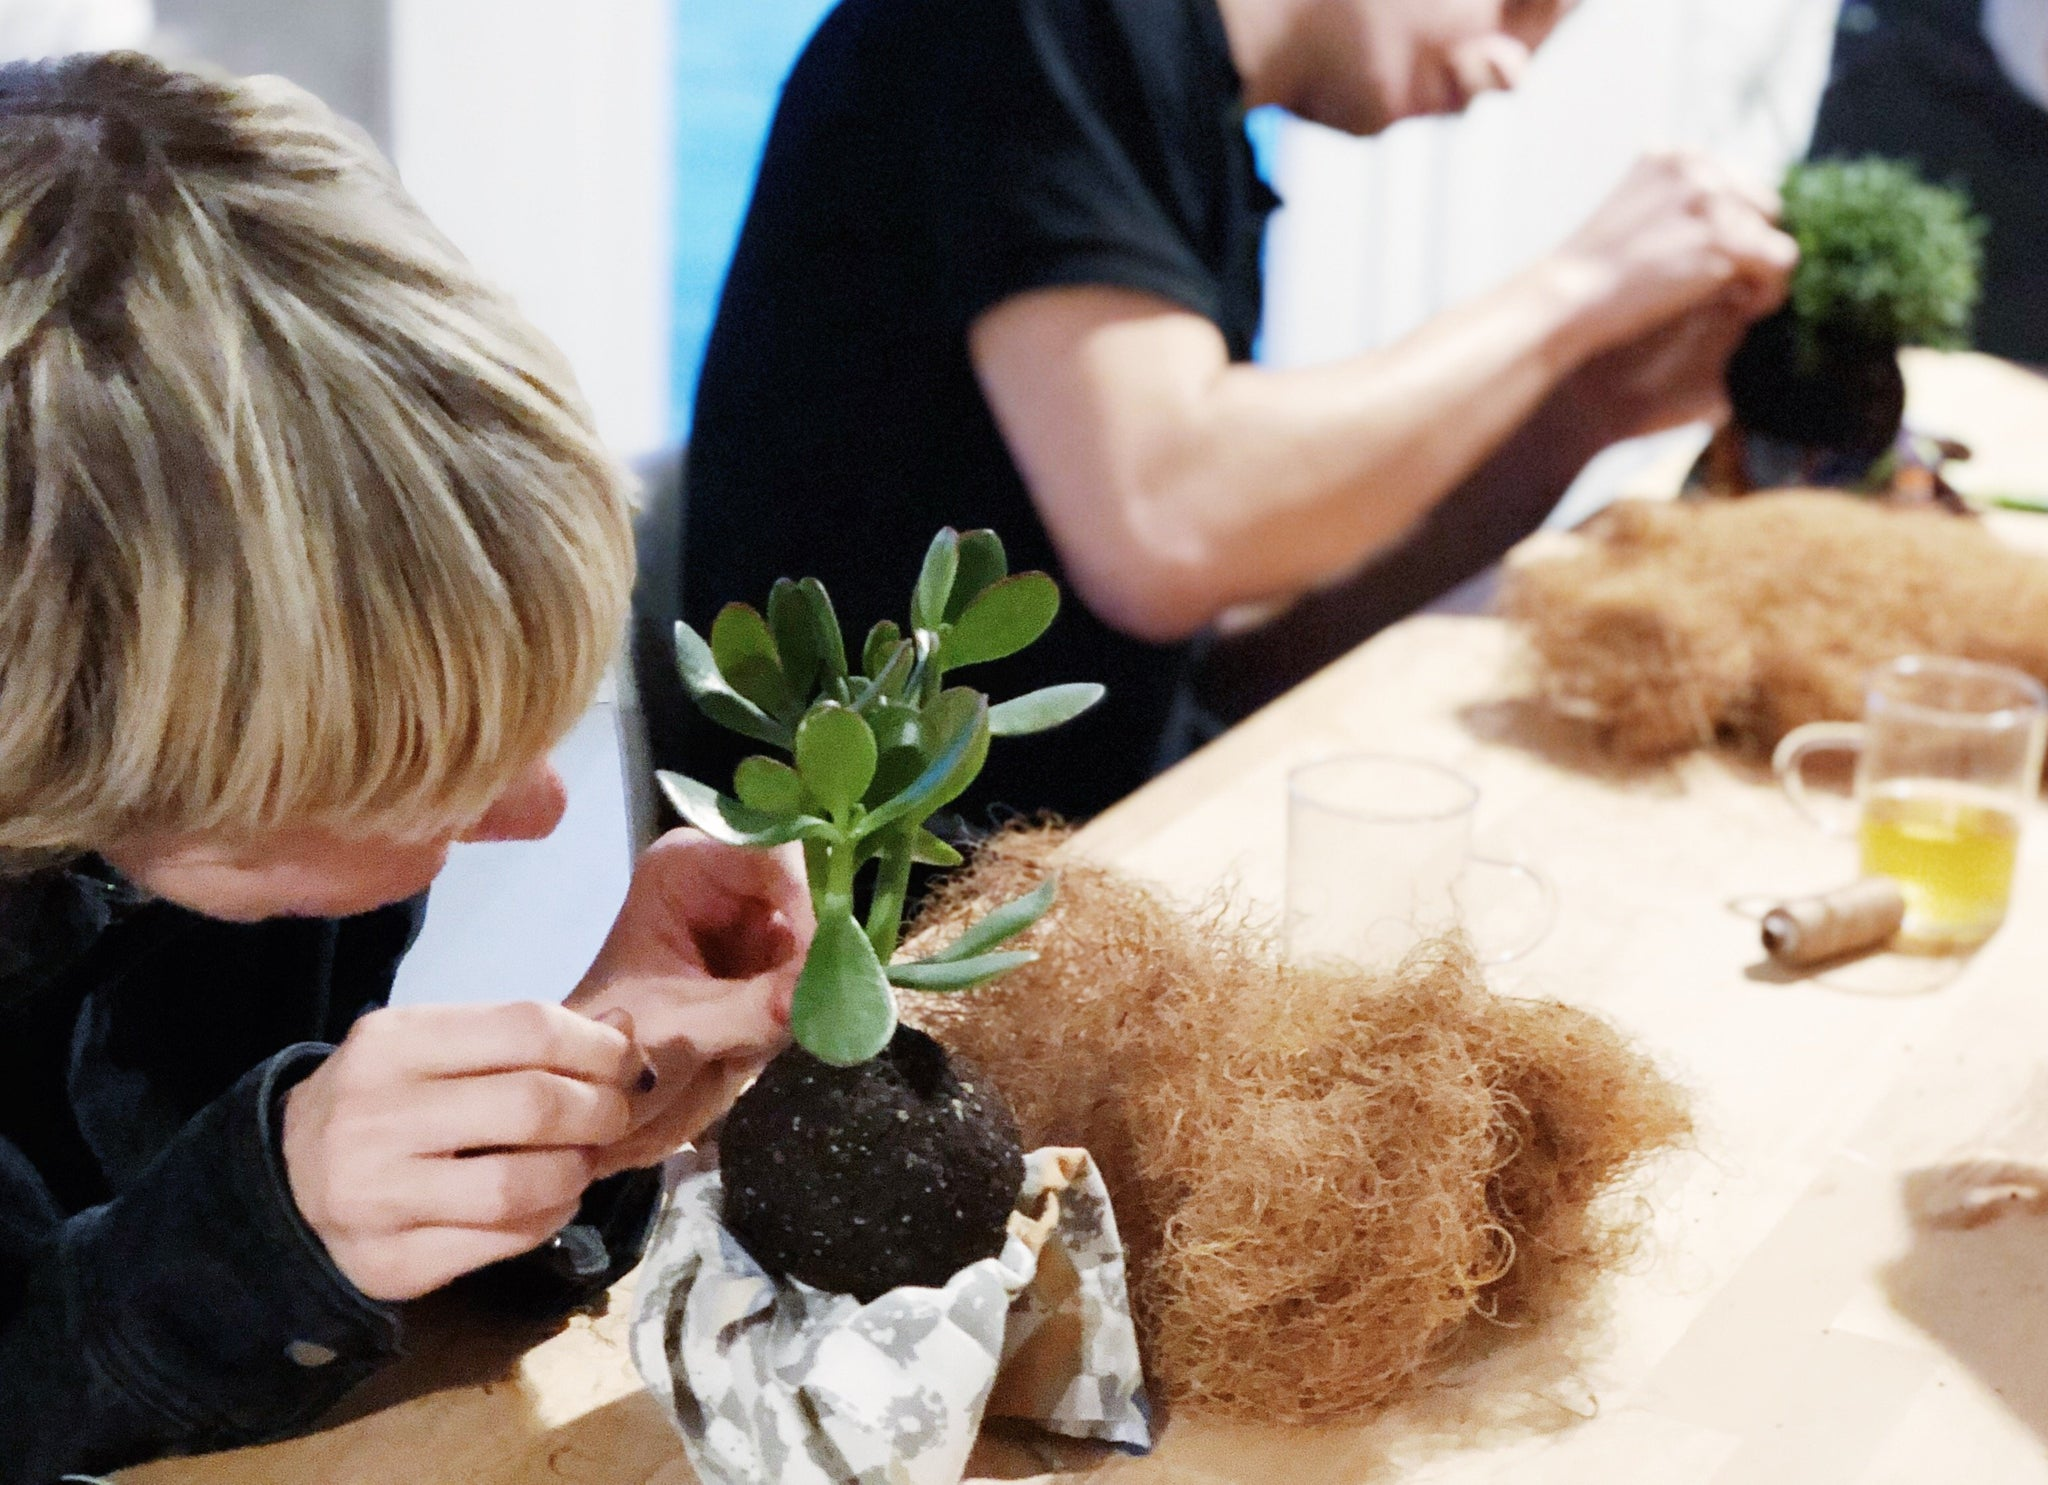 Virtueller Kokedama Workshop (inkl. Material)